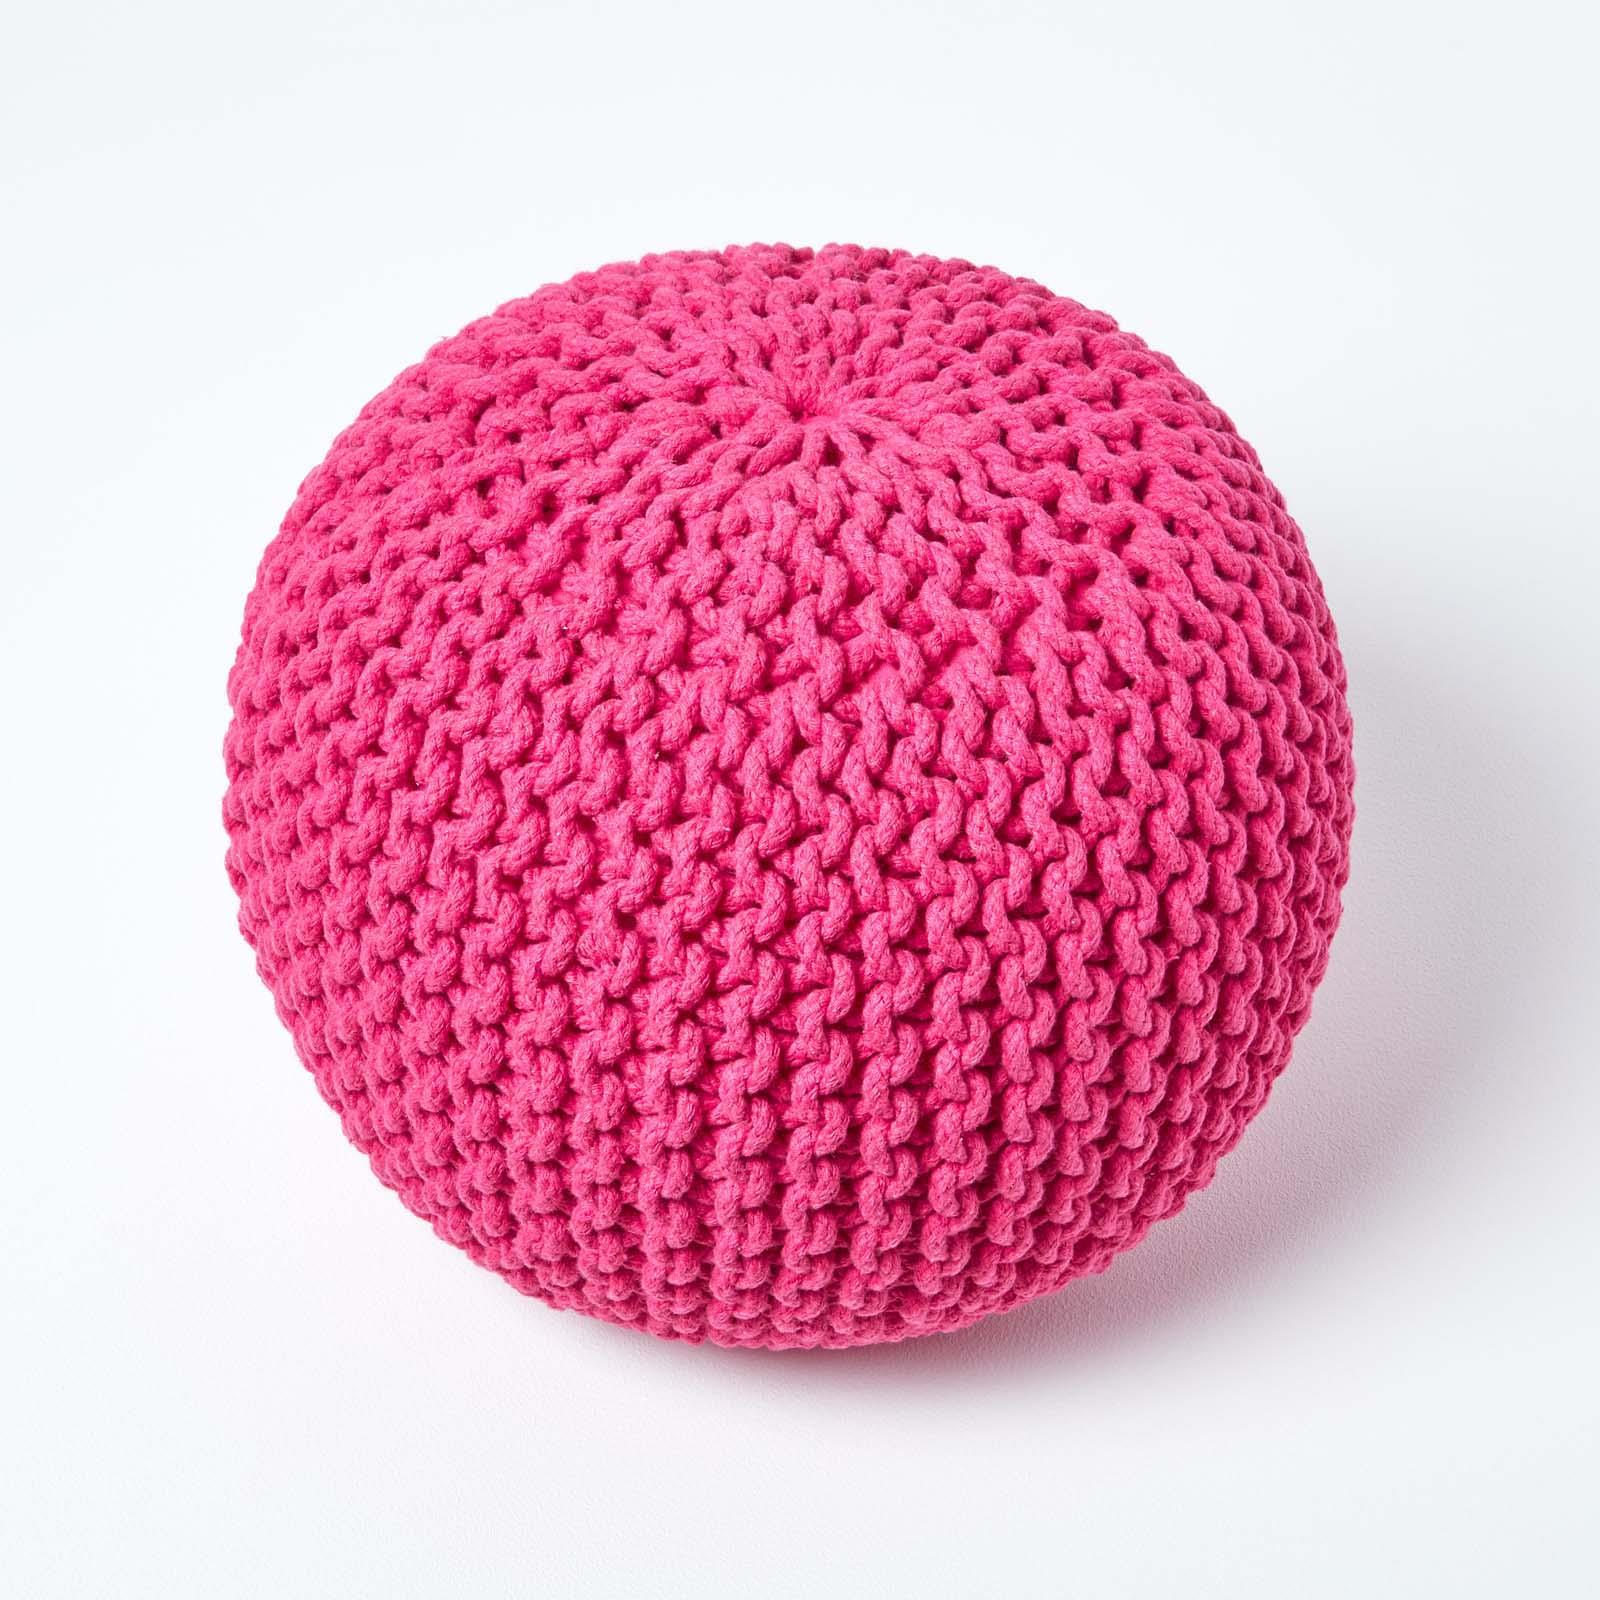 Hand-Knitted-100-Cotton-Pouffes-Round-Sphere-Or-Cube-Square-Chunky-Footstools thumbnail 64